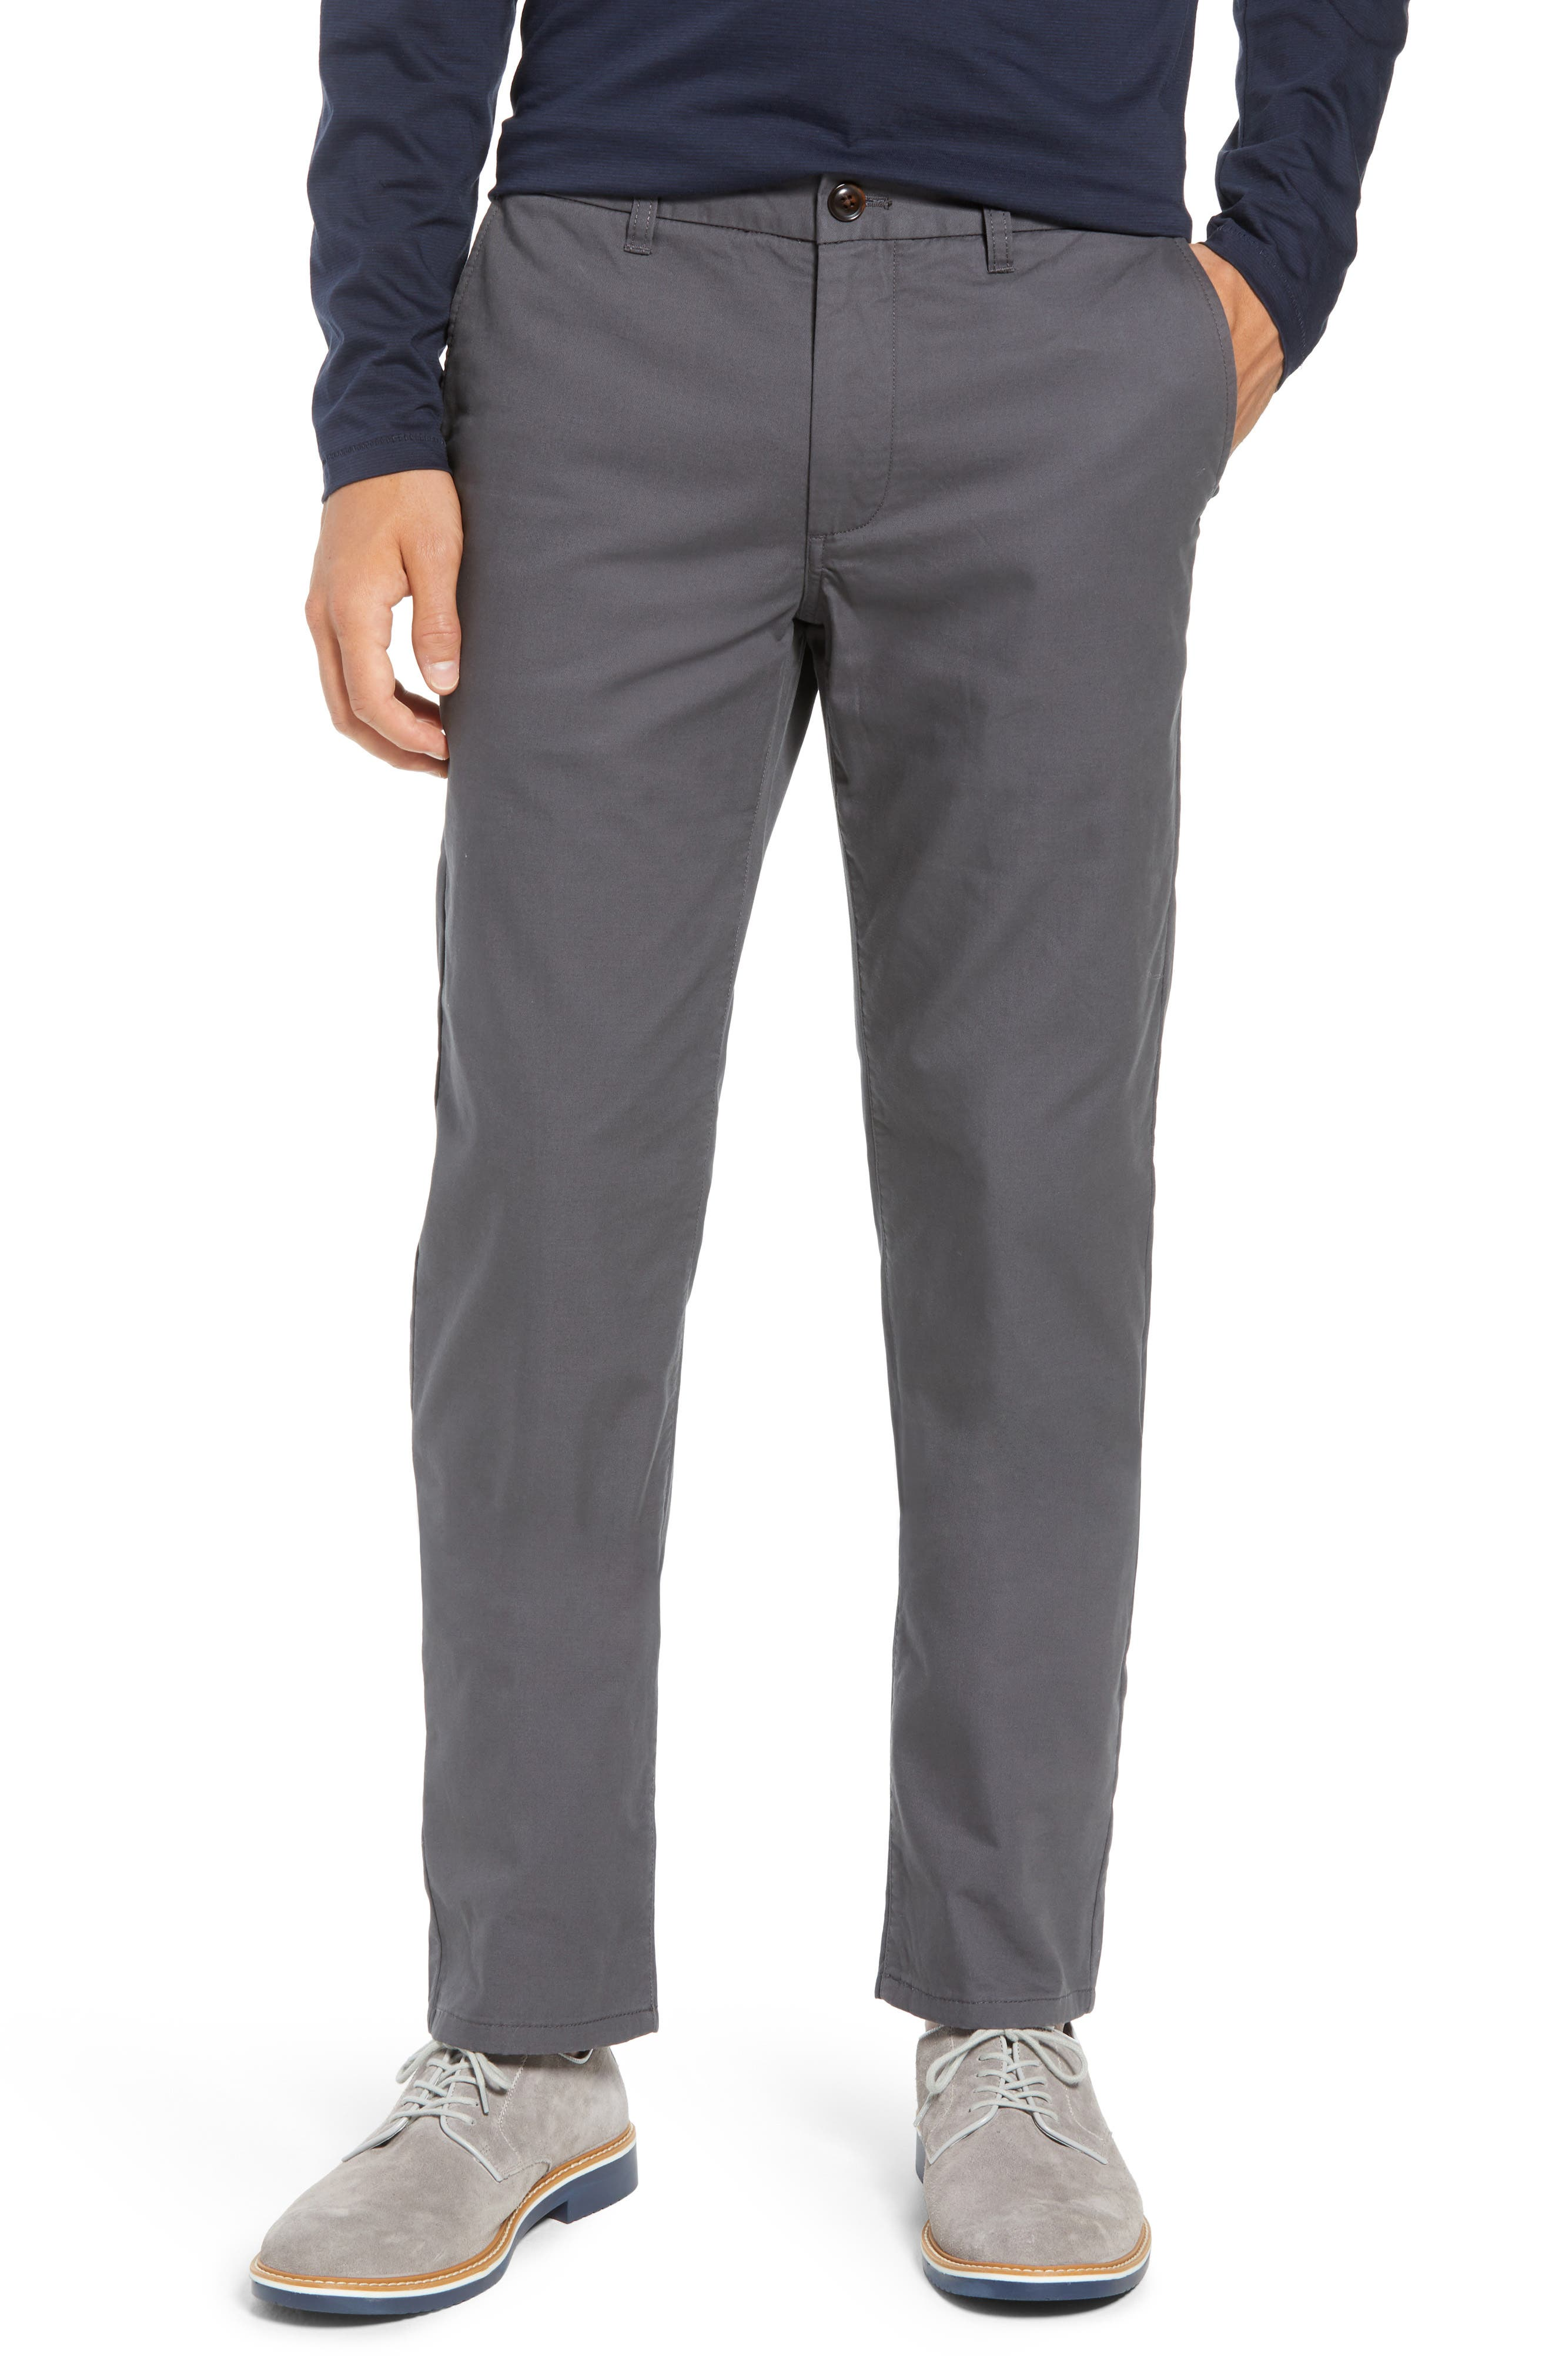 BONOBOS Slim Fit Flannel Lined Chinos, Main, color, 020